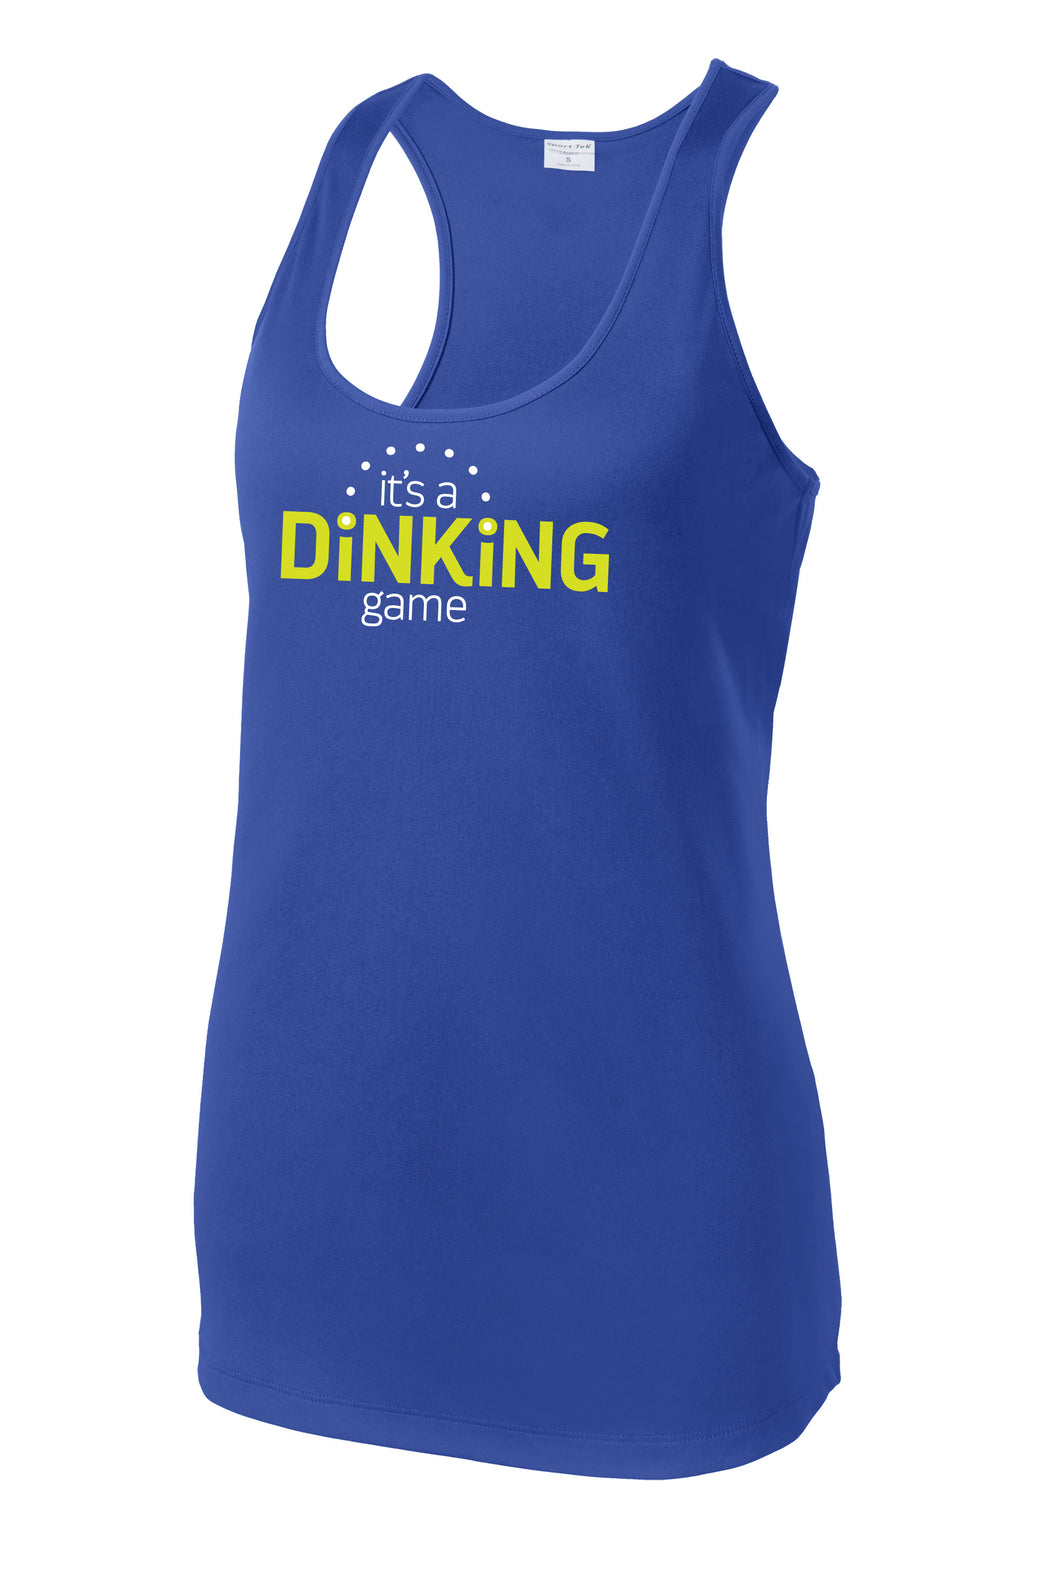 It's a Dinking Game - Womens Performance Racerback Tank